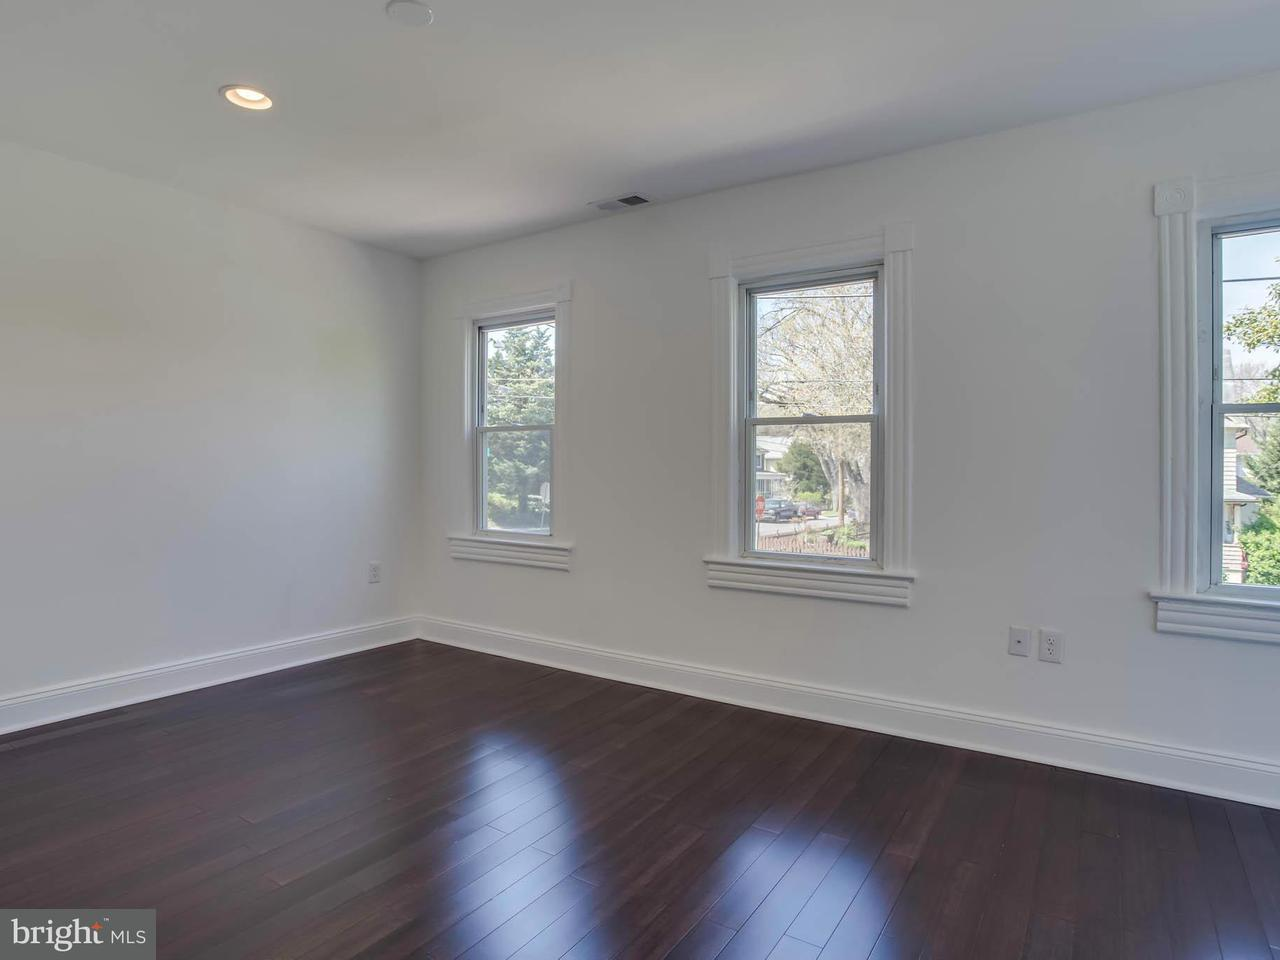 Additional photo for property listing at 3301 17TH ST NE 3301 17TH ST NE Washington, District Of Columbia 20018 United States